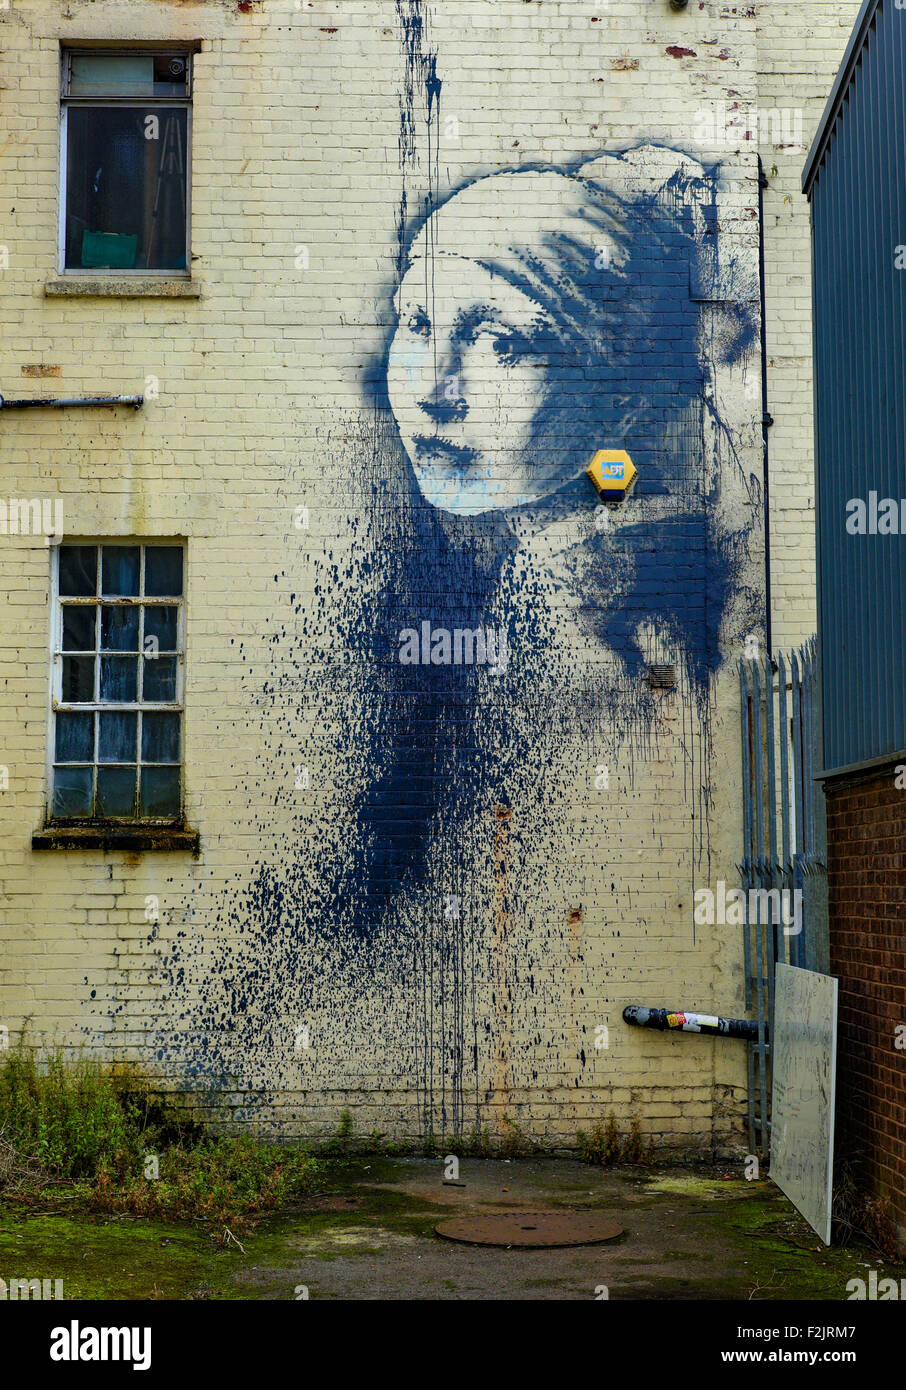 Banksy's Girl with a Pierced Eardrum graffitti on a building by Bristol's floating harbour - Stock Image